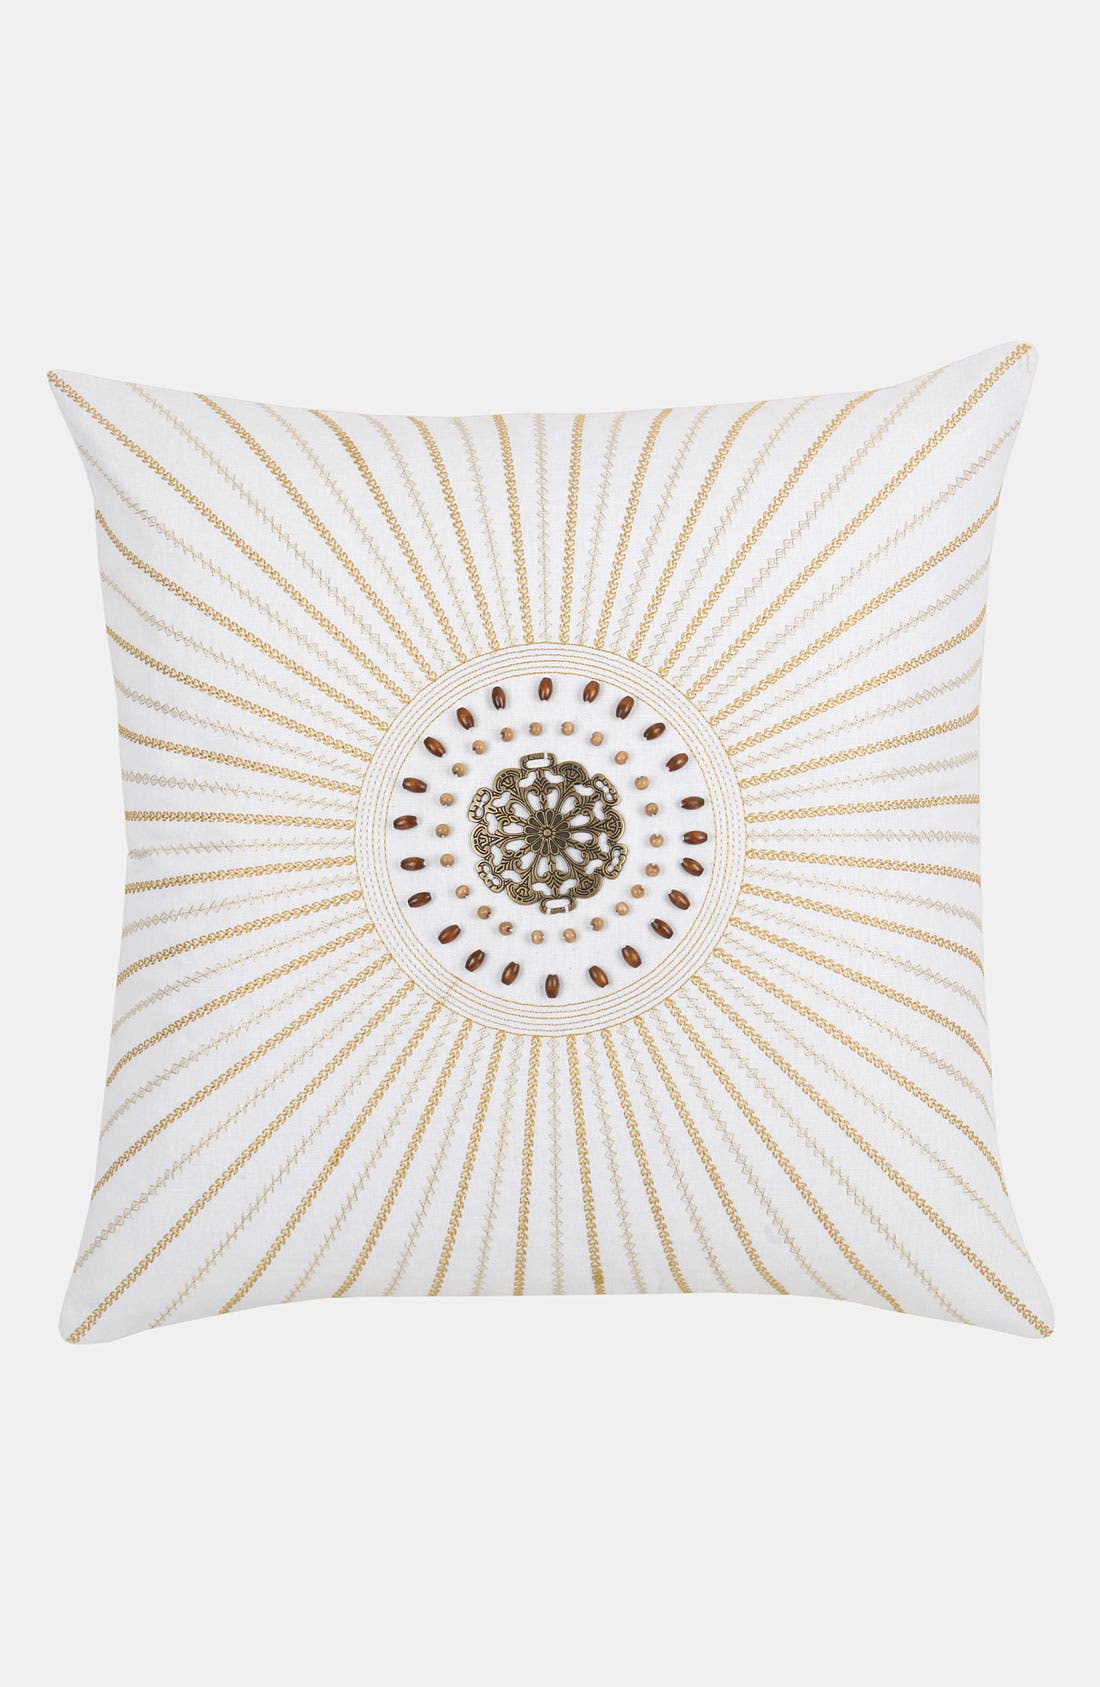 Main Image - Blissliving Home 'Sunburst' Pillow (Online Only)